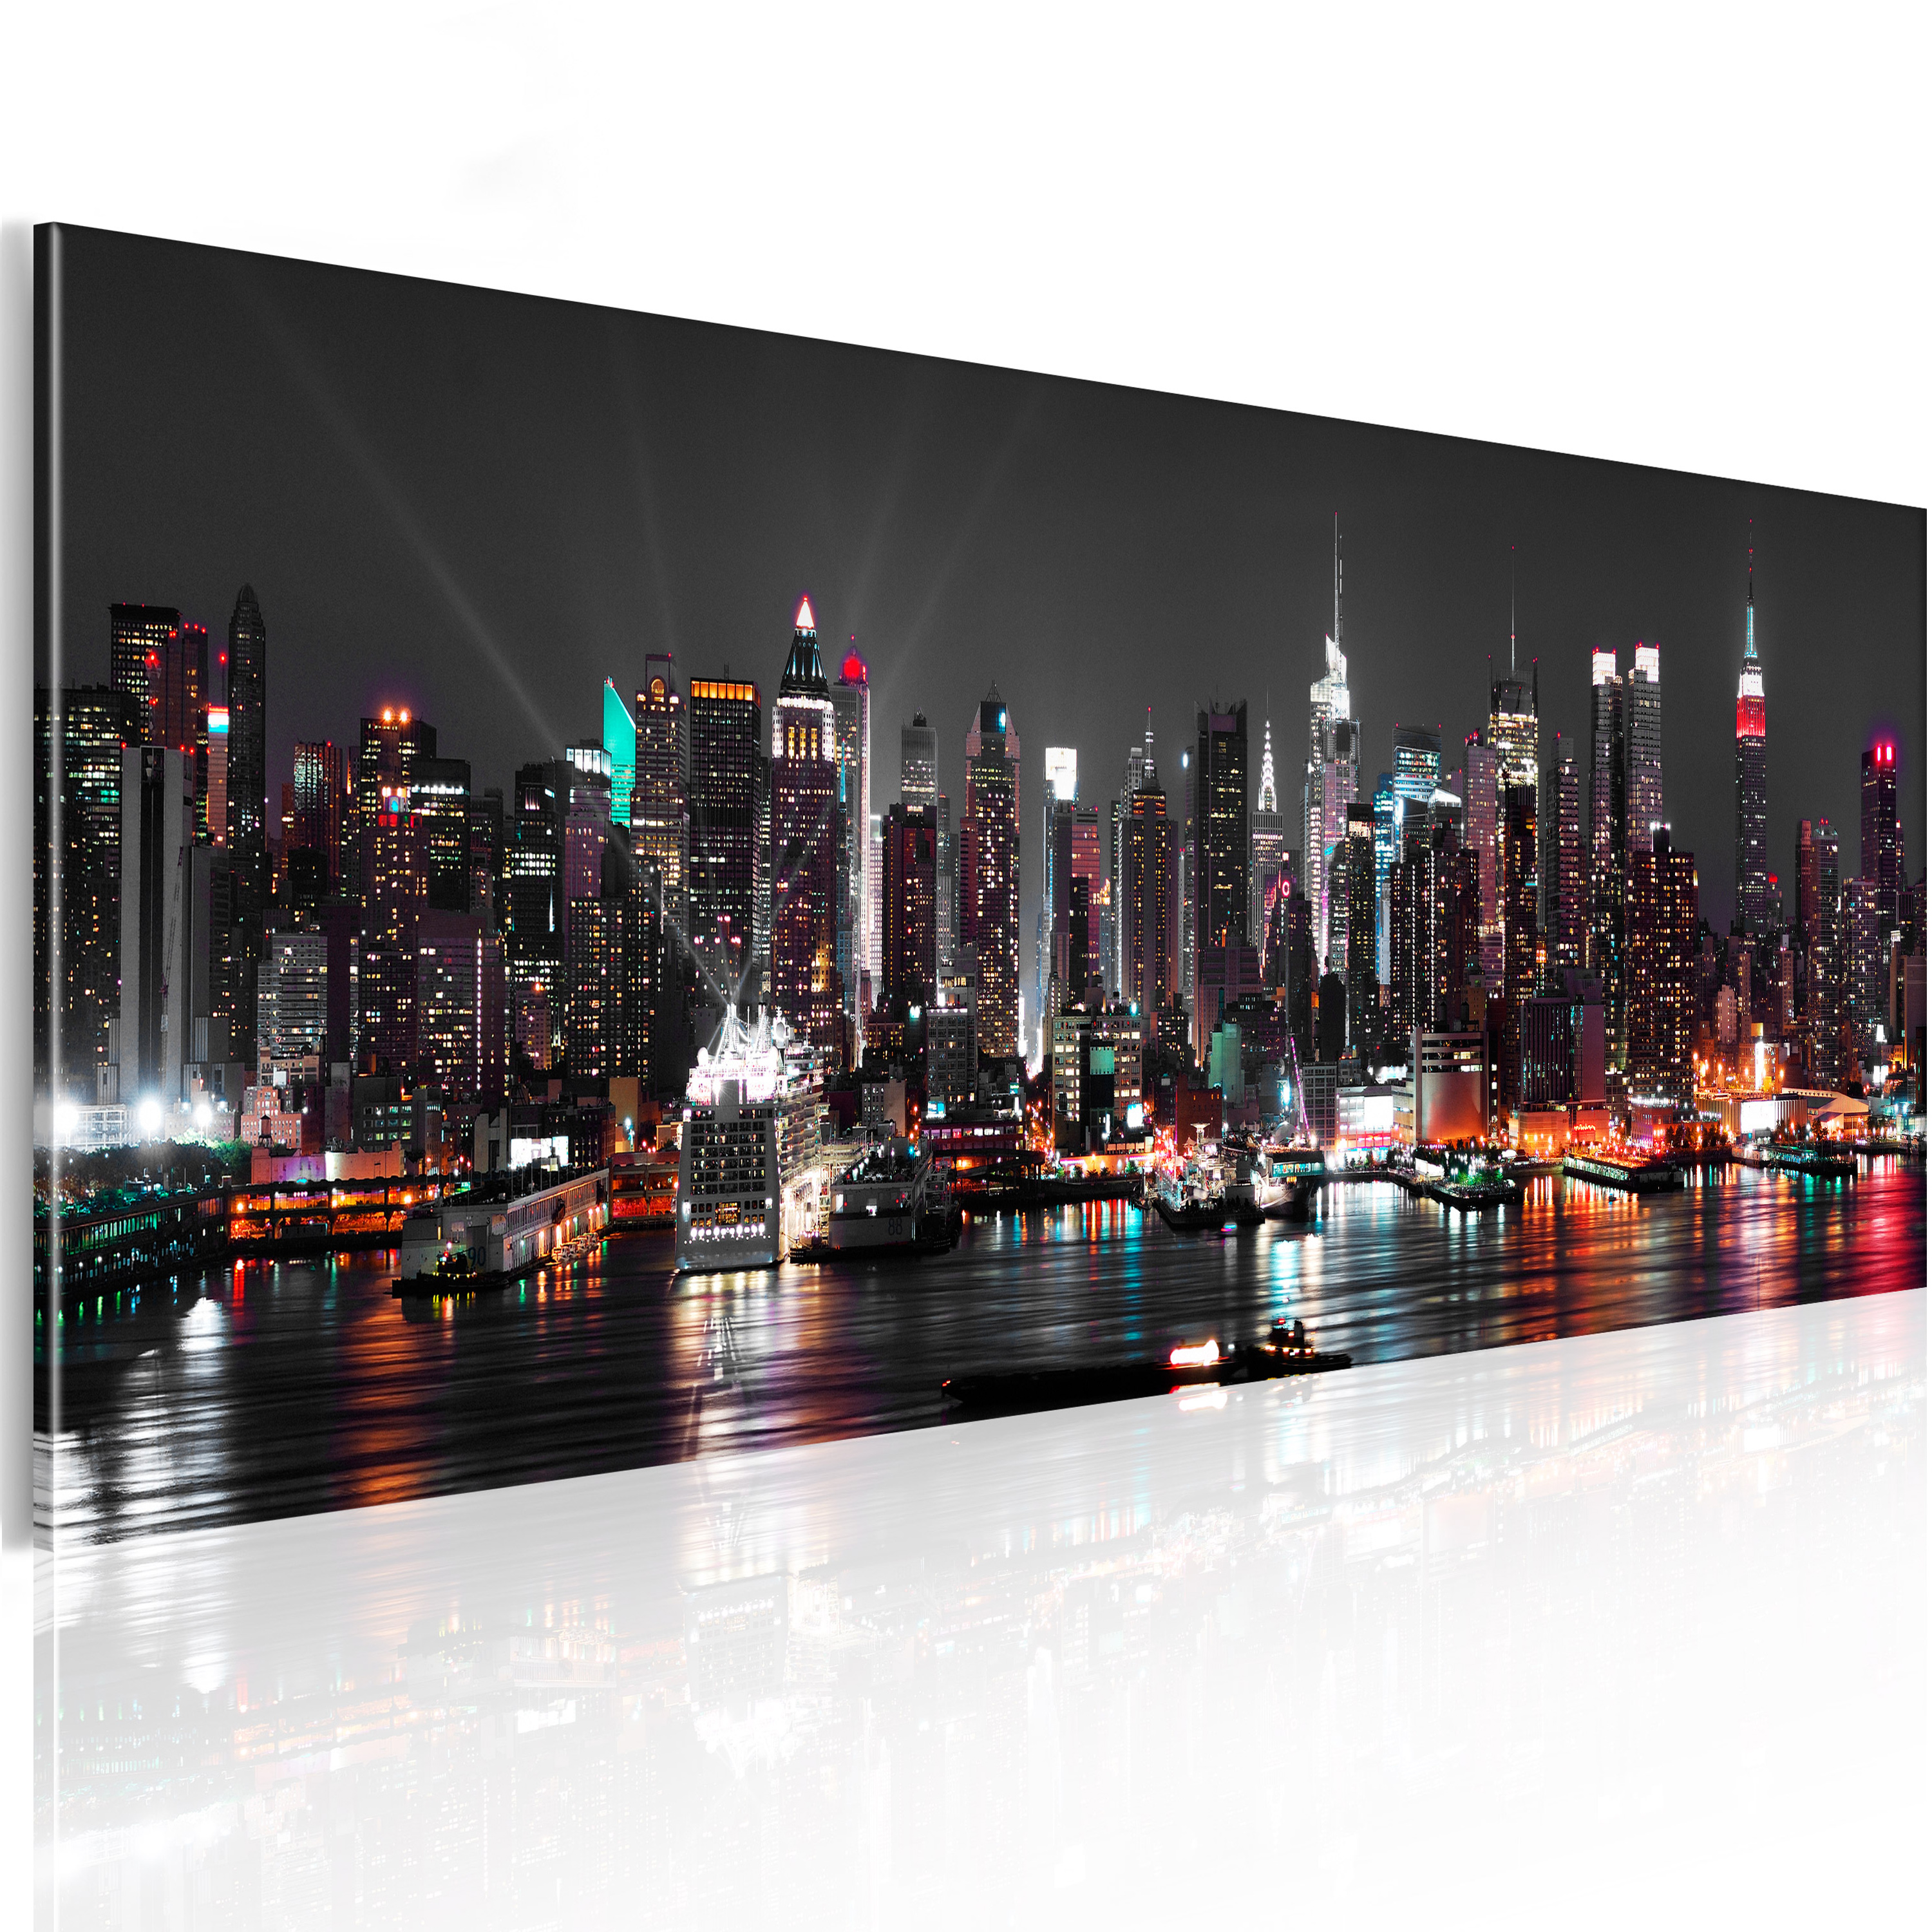 wandbilder xxl new york skyline stadt leinwand bilder wohnzimmer d b 0087 b a ebay. Black Bedroom Furniture Sets. Home Design Ideas